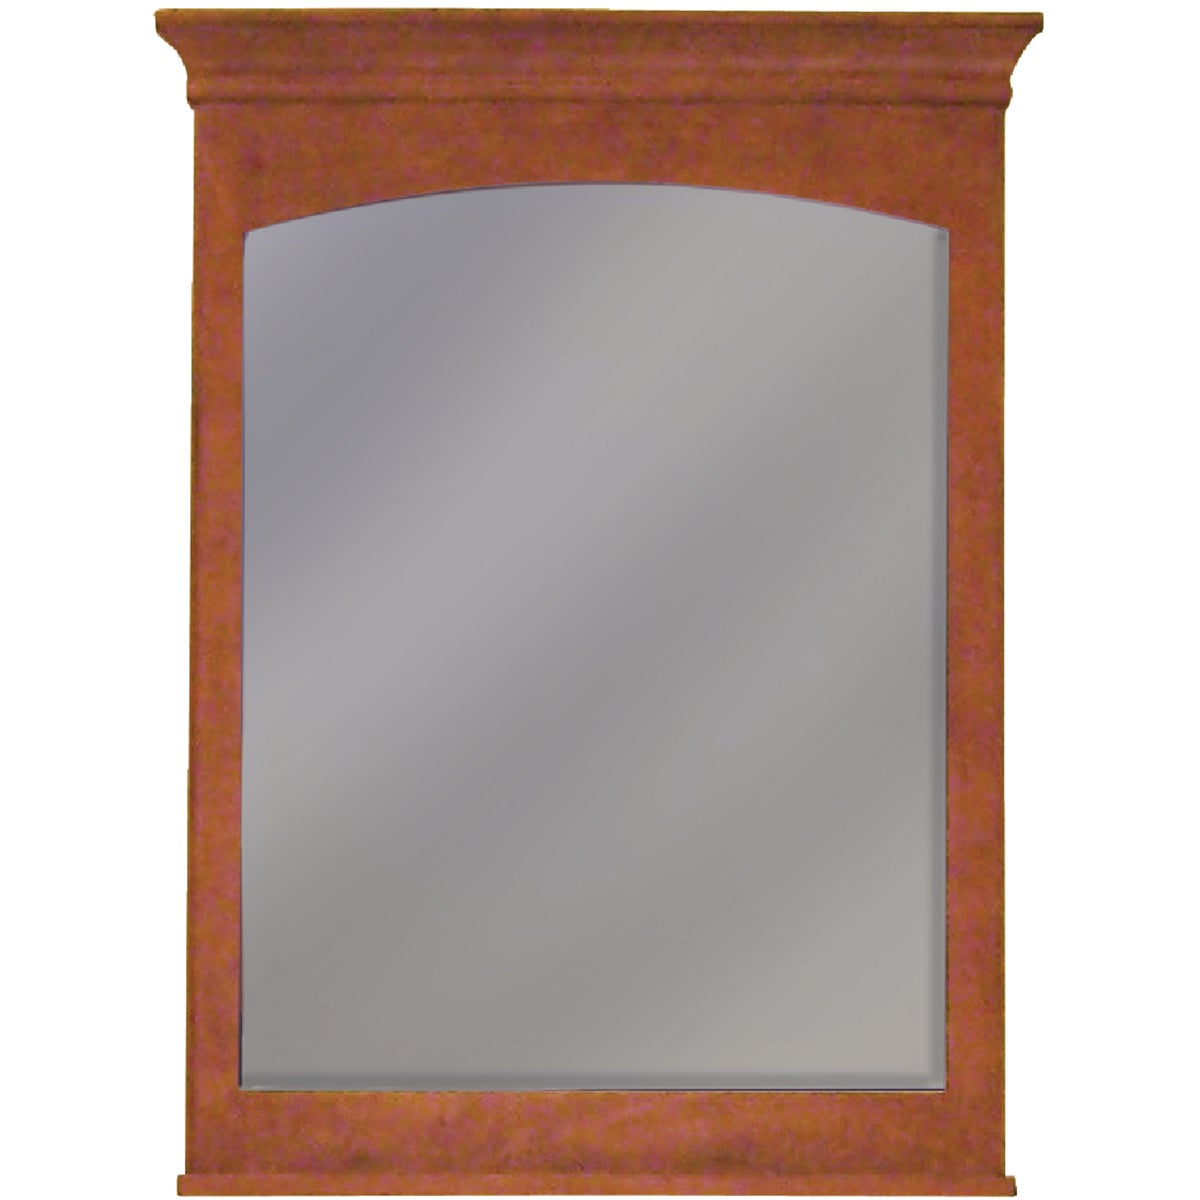 30X40 EXPRESSIONS MIRROR - EP3040MR by Sunnywood Products